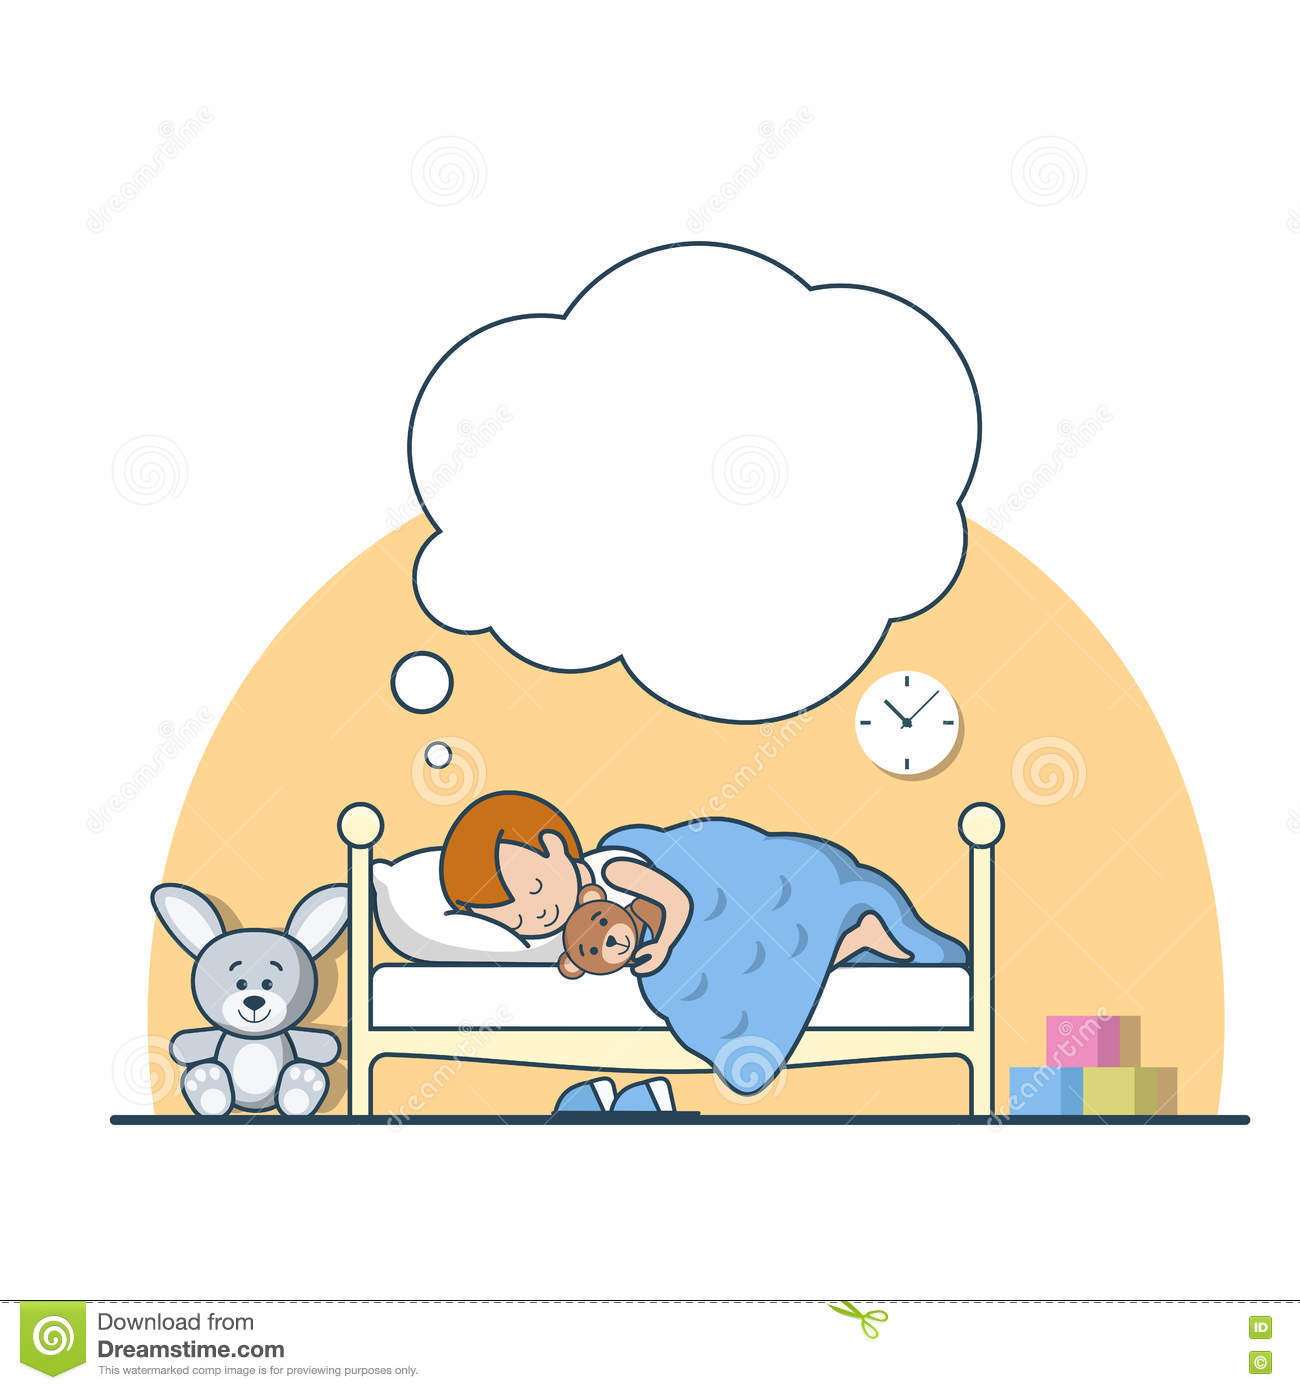 Boy Is Sleeping In His Bedroom Cartoon Vector